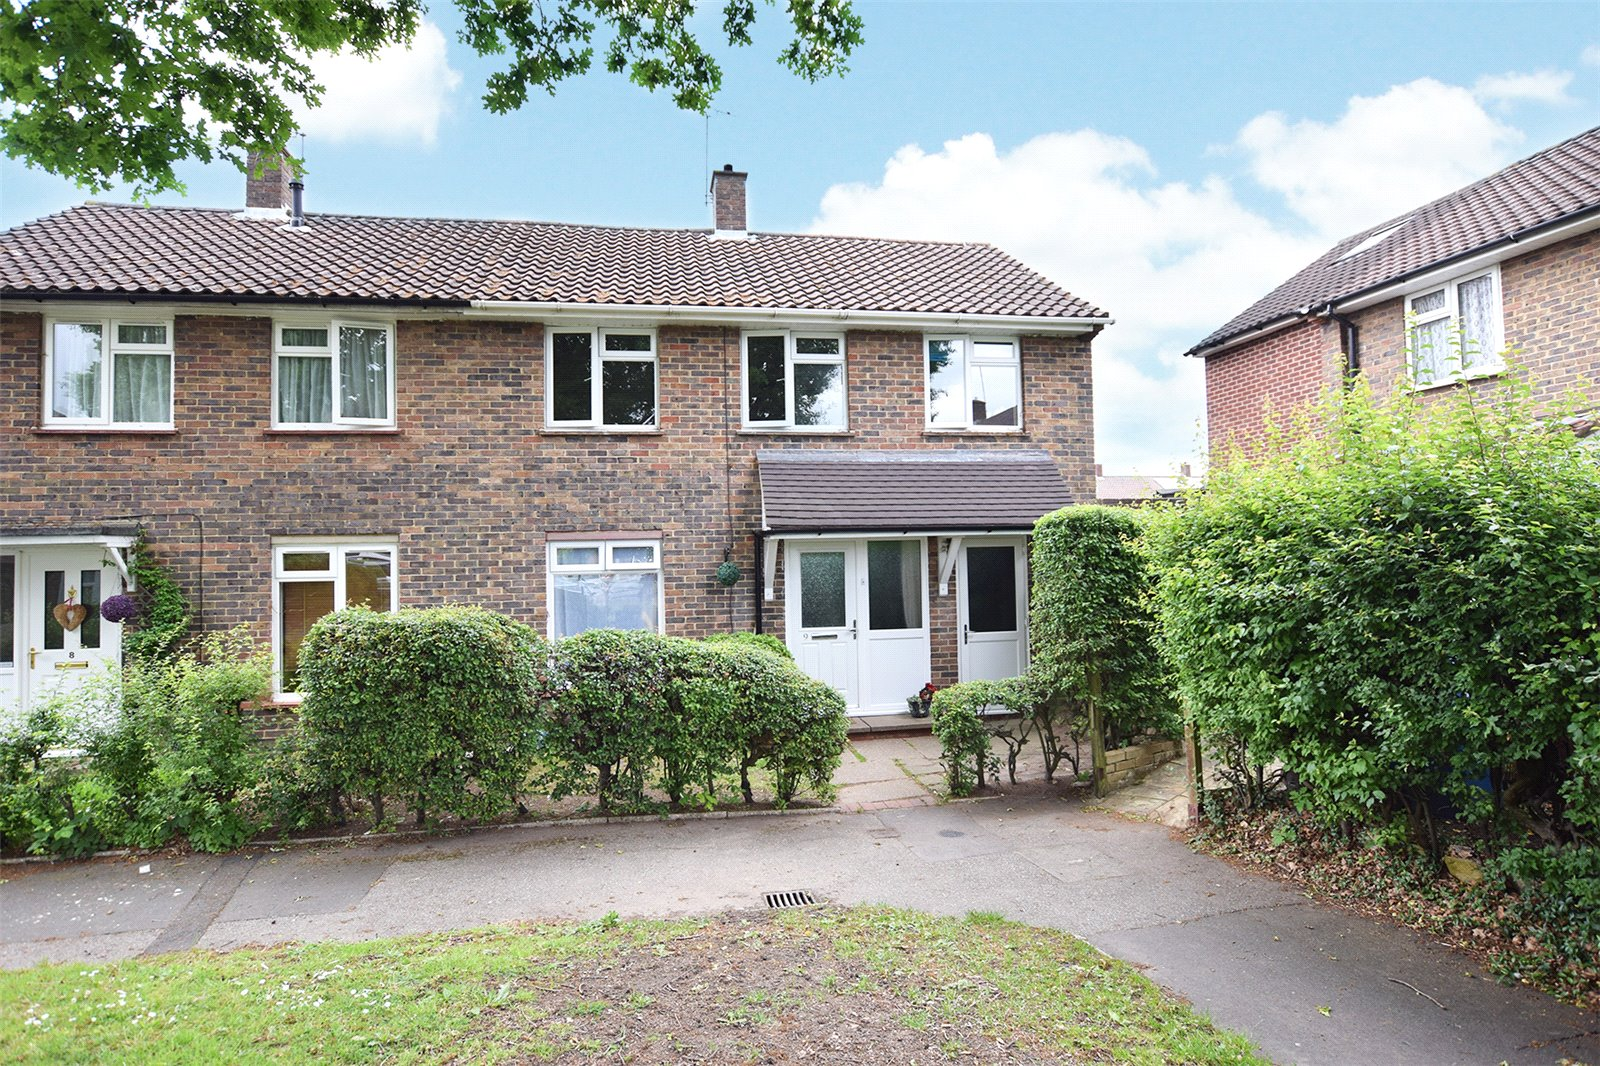 3 Bedrooms Semi Detached House for sale in Nelson Close, Bracknell, Berkshire, RG12